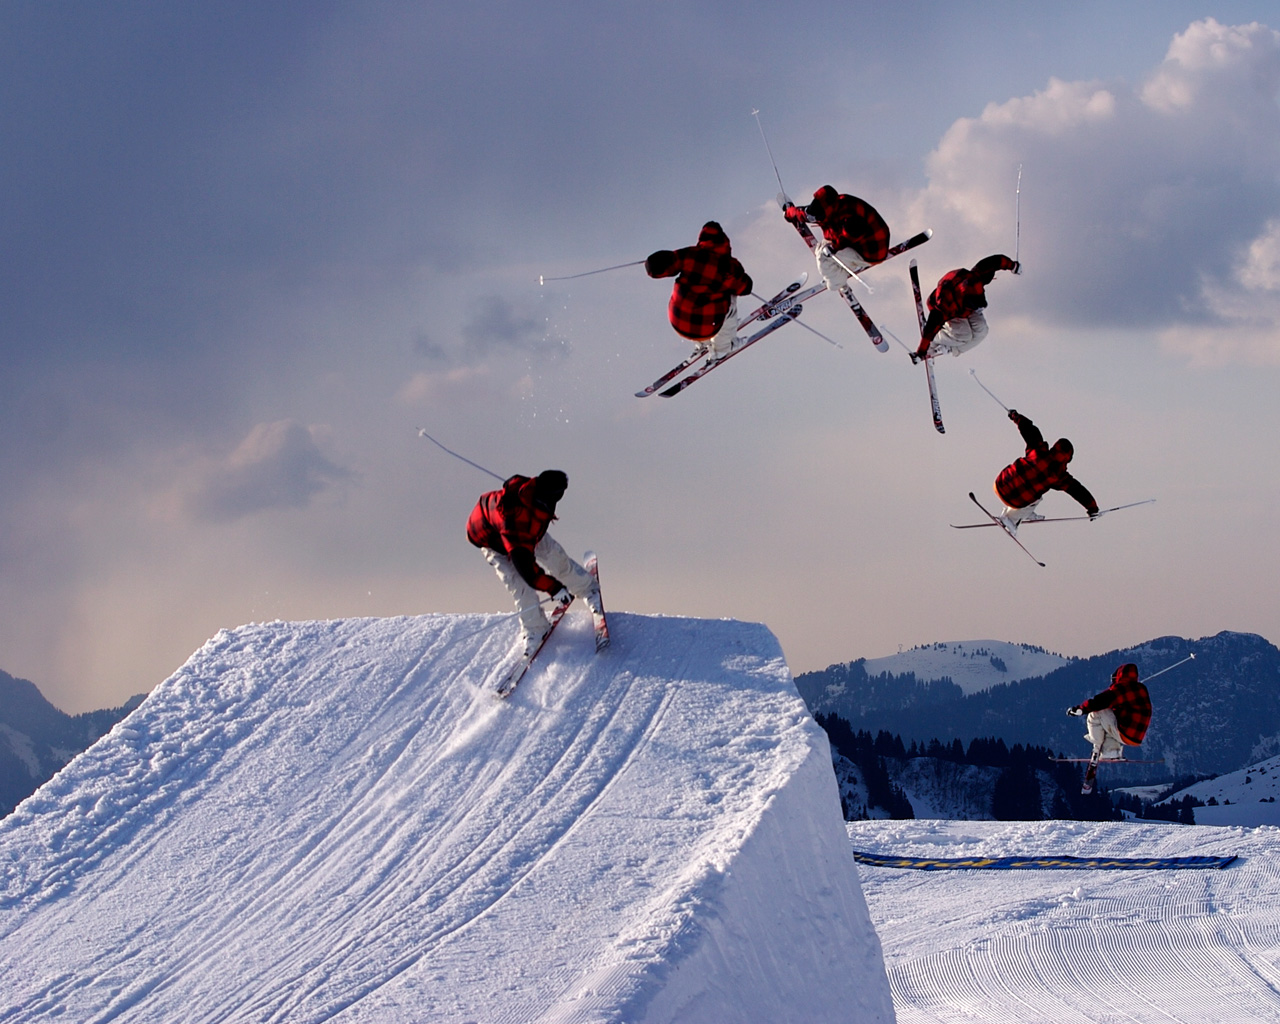 Skiing Wallpaper Give Me Your Best Skiing Wallpapers Ski Gabber Newschoolers